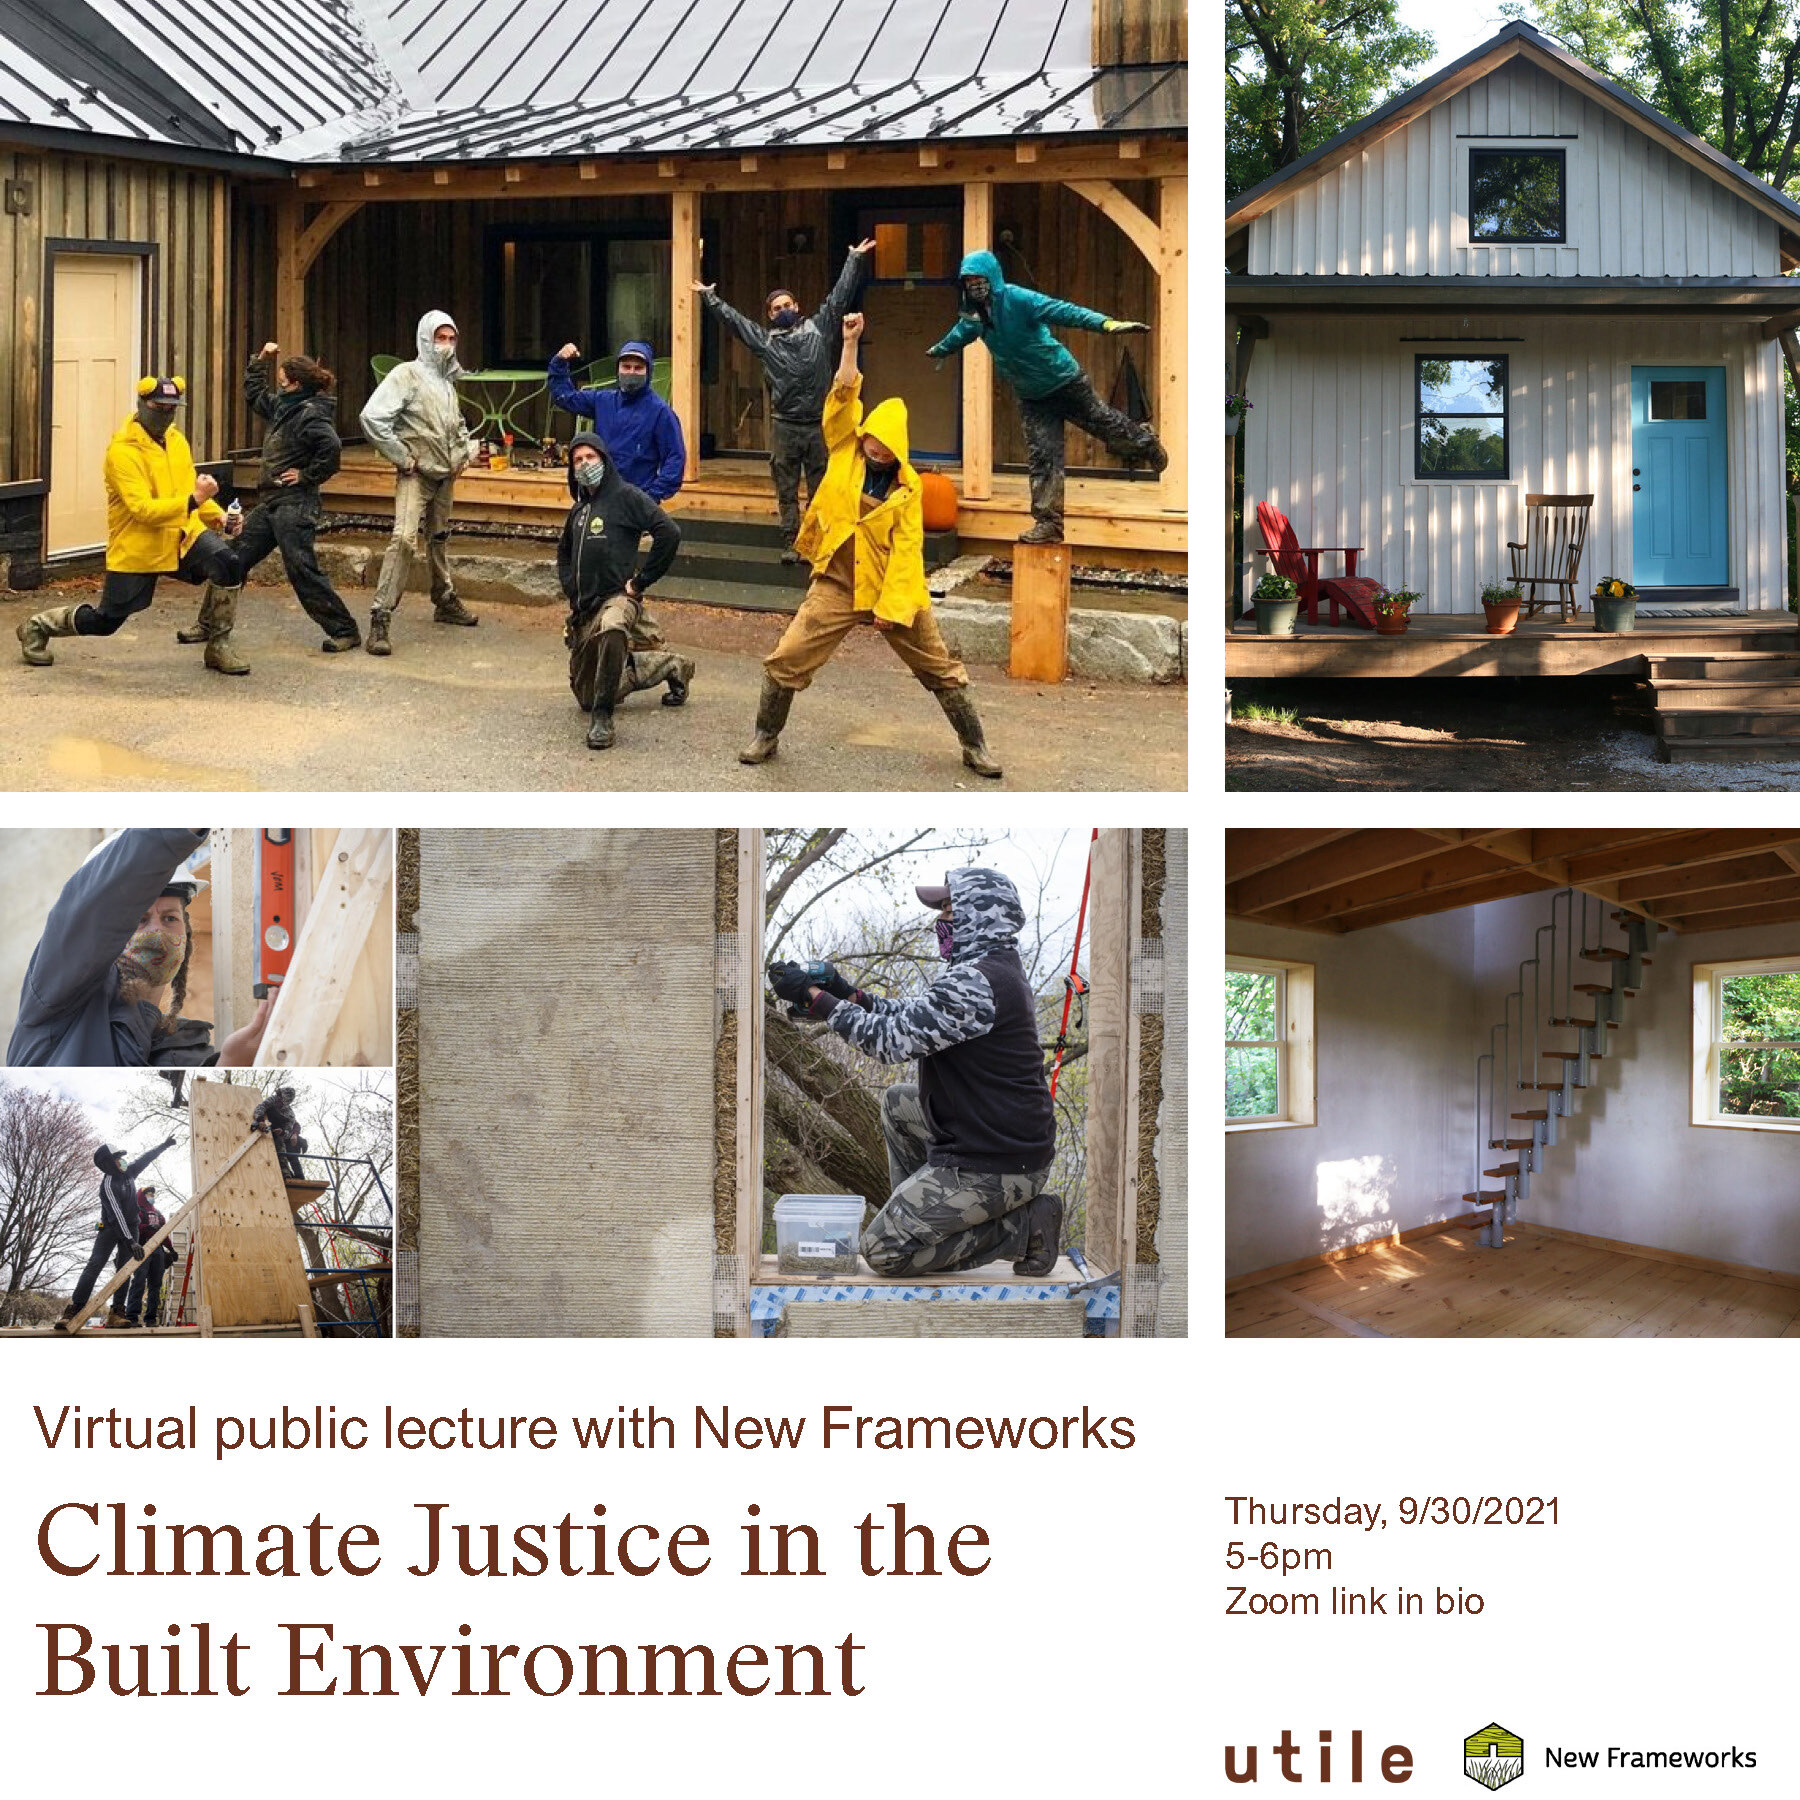 Climate Justice in the Built Environment: Virtual Public Lecture with New Frameworks